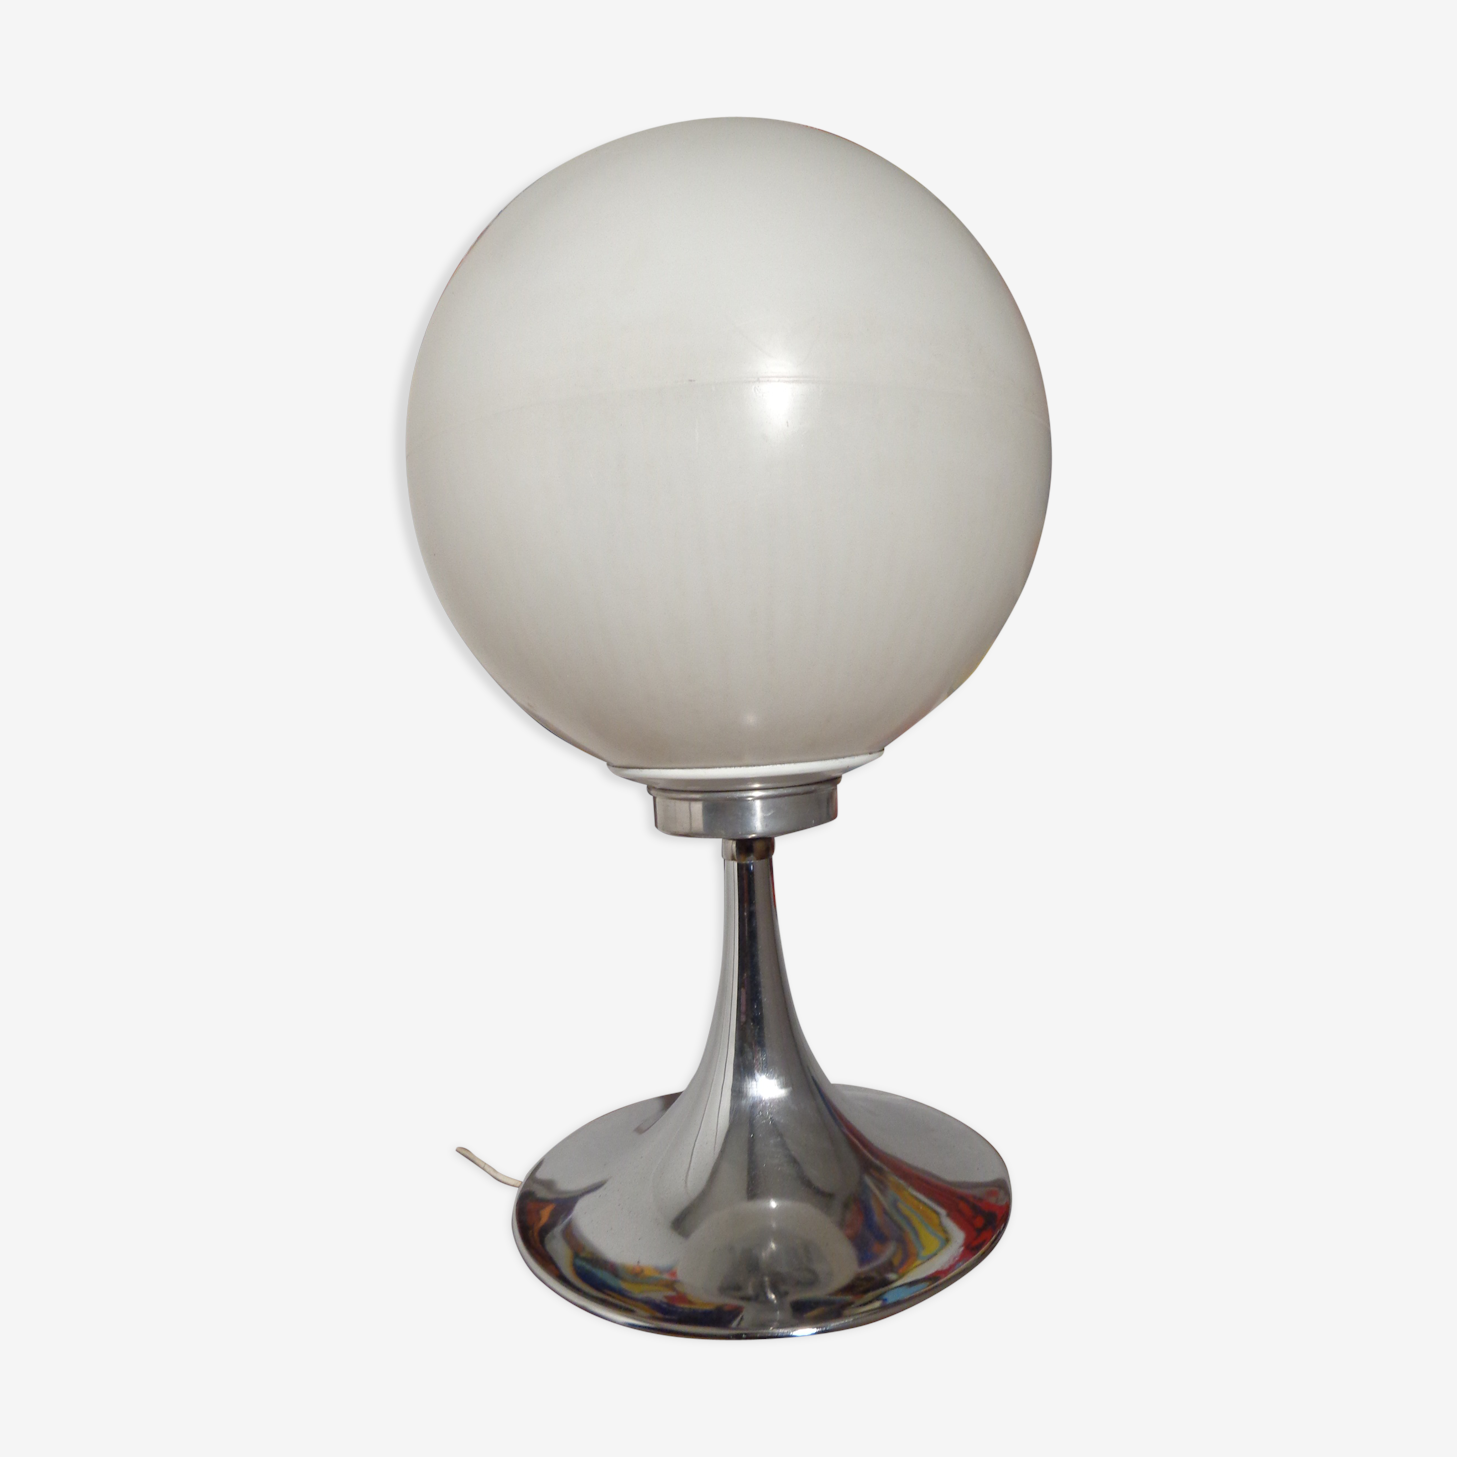 Lamp ball chrome foot tulip of the 1960s